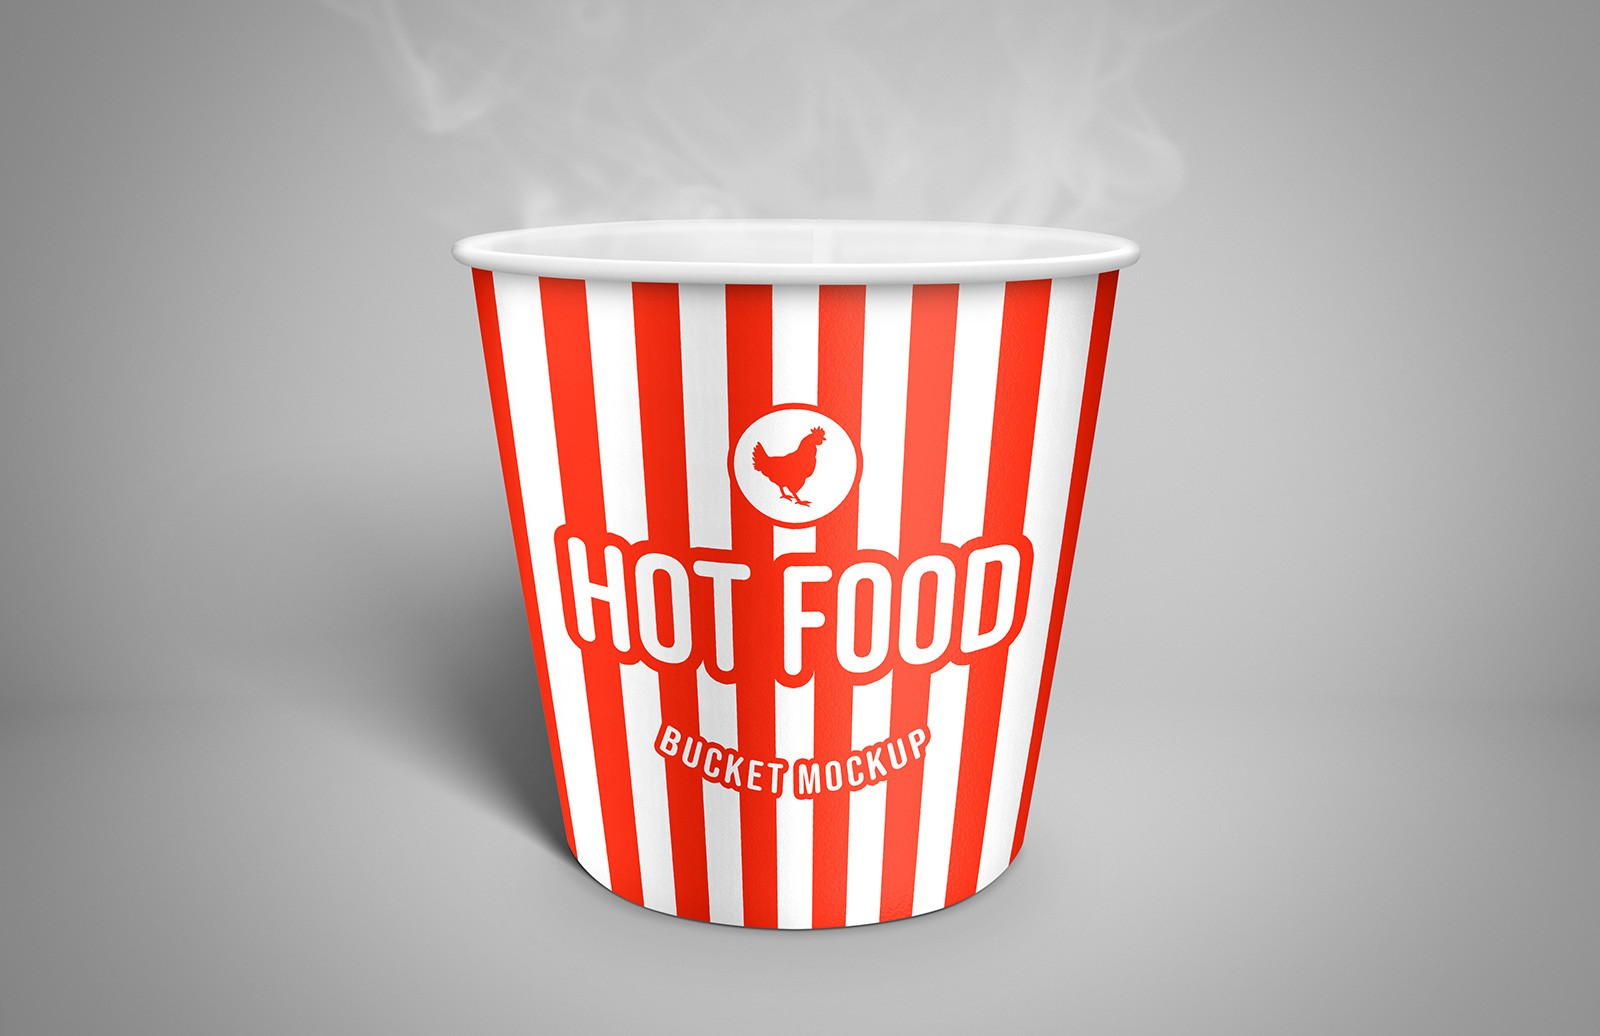 Hot Food Bucket Mockup